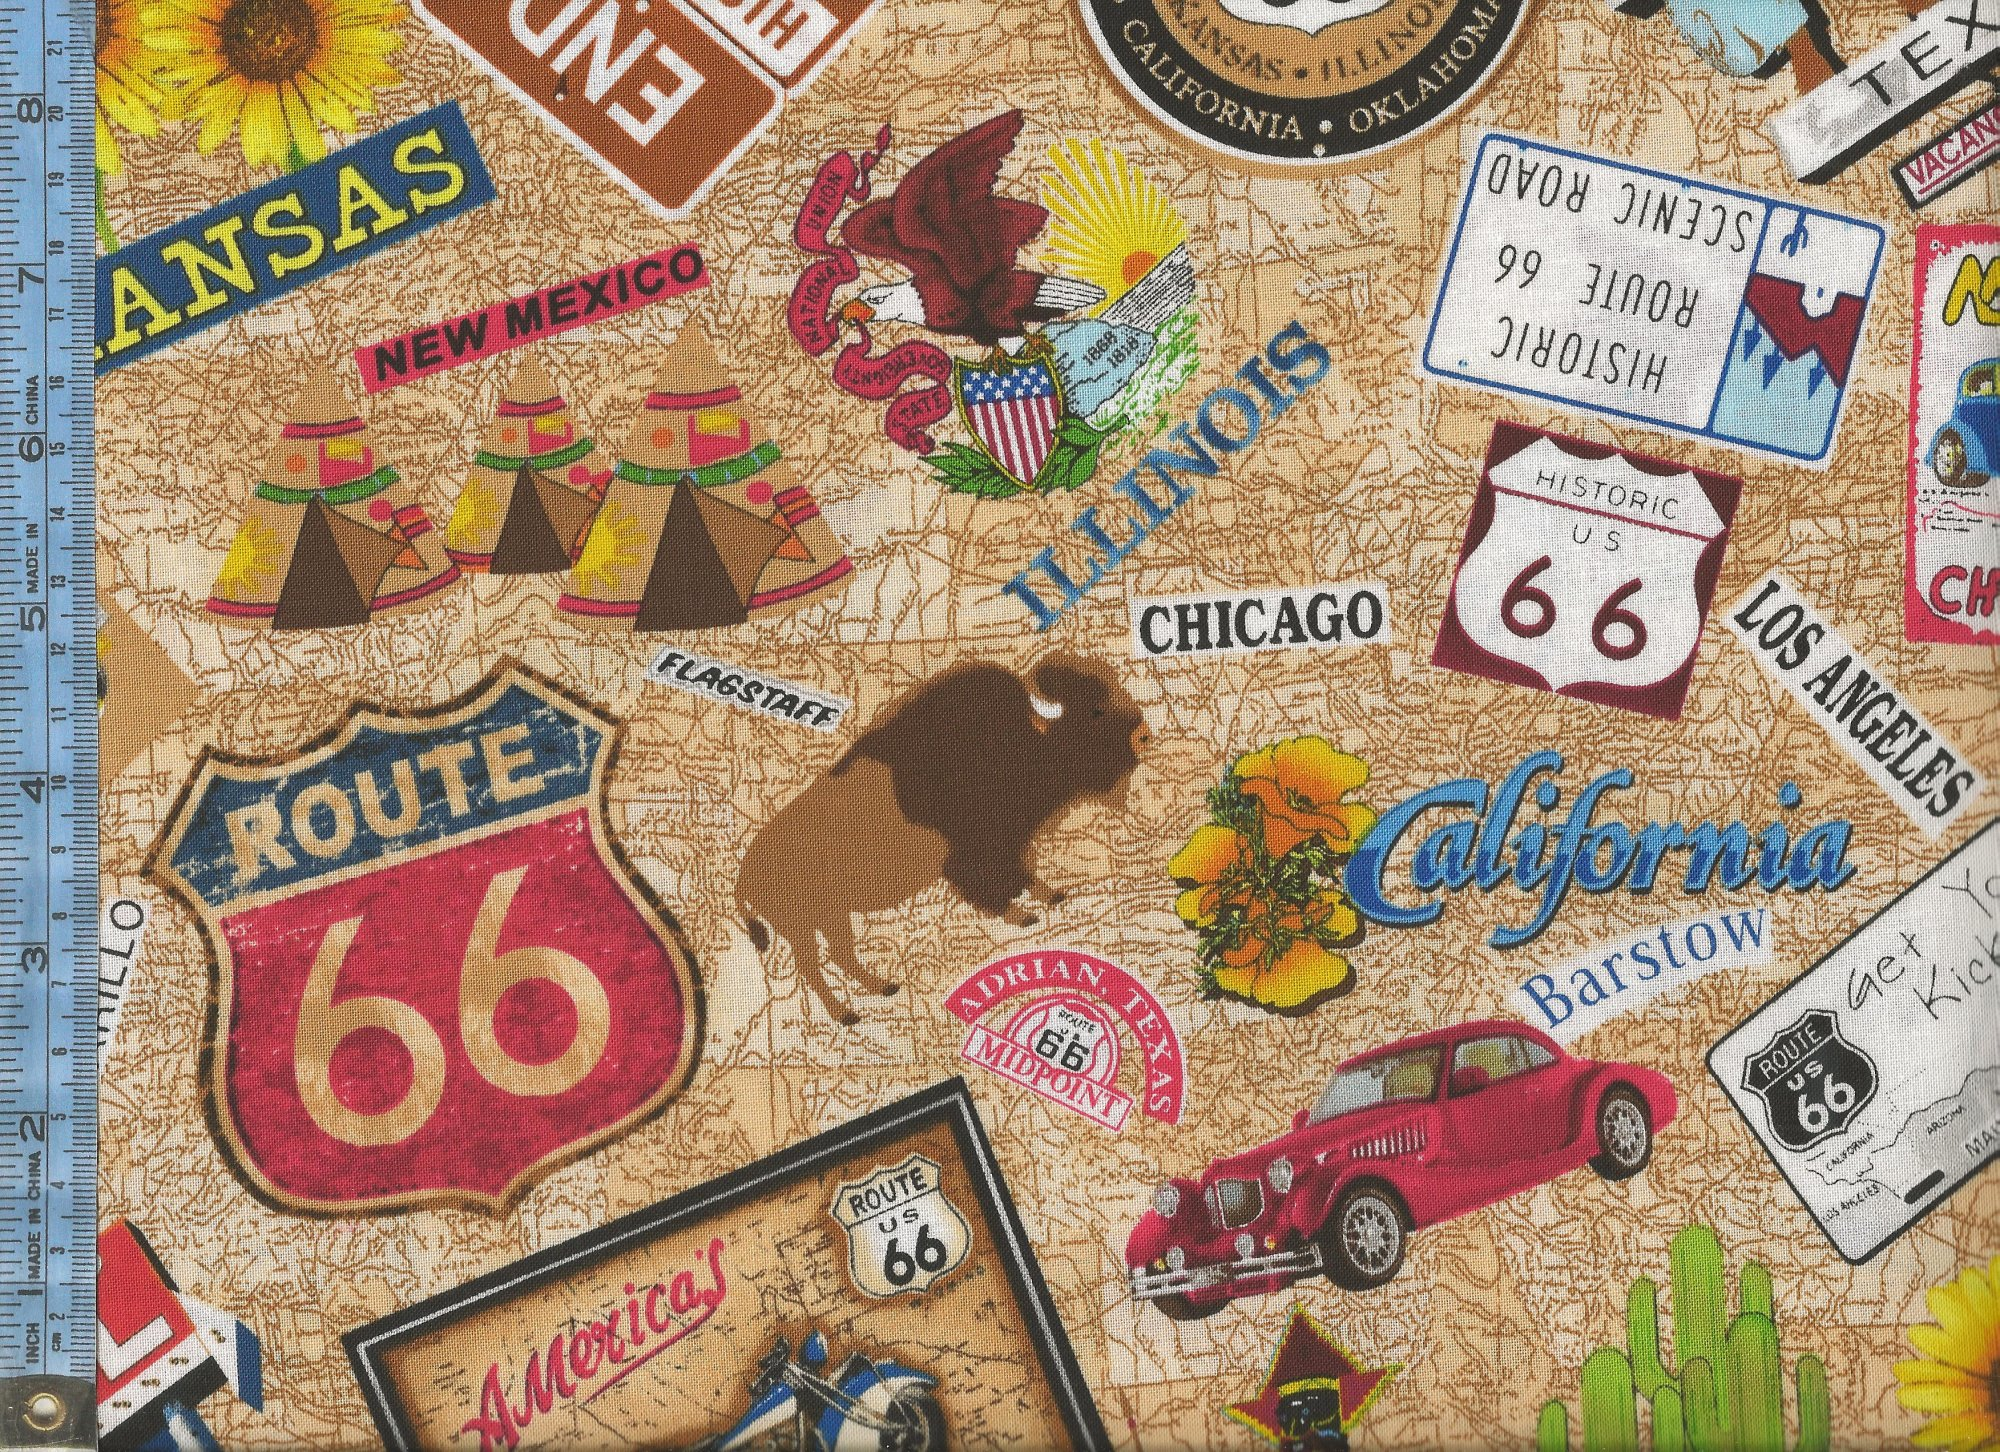 Route 66 street signs names of